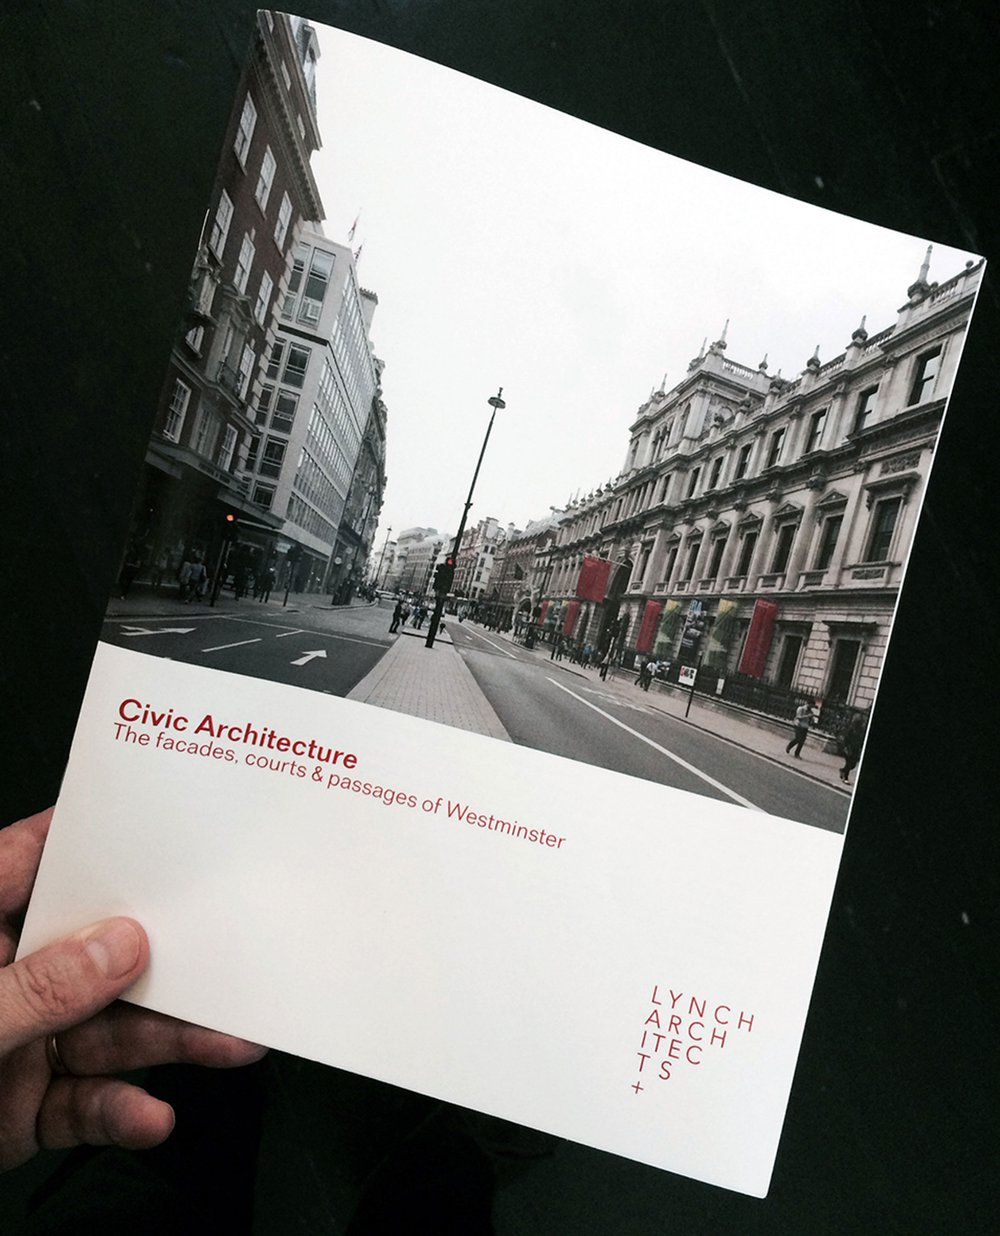 Civic_Architecture_Exhibition_CATALOGUE.jpg